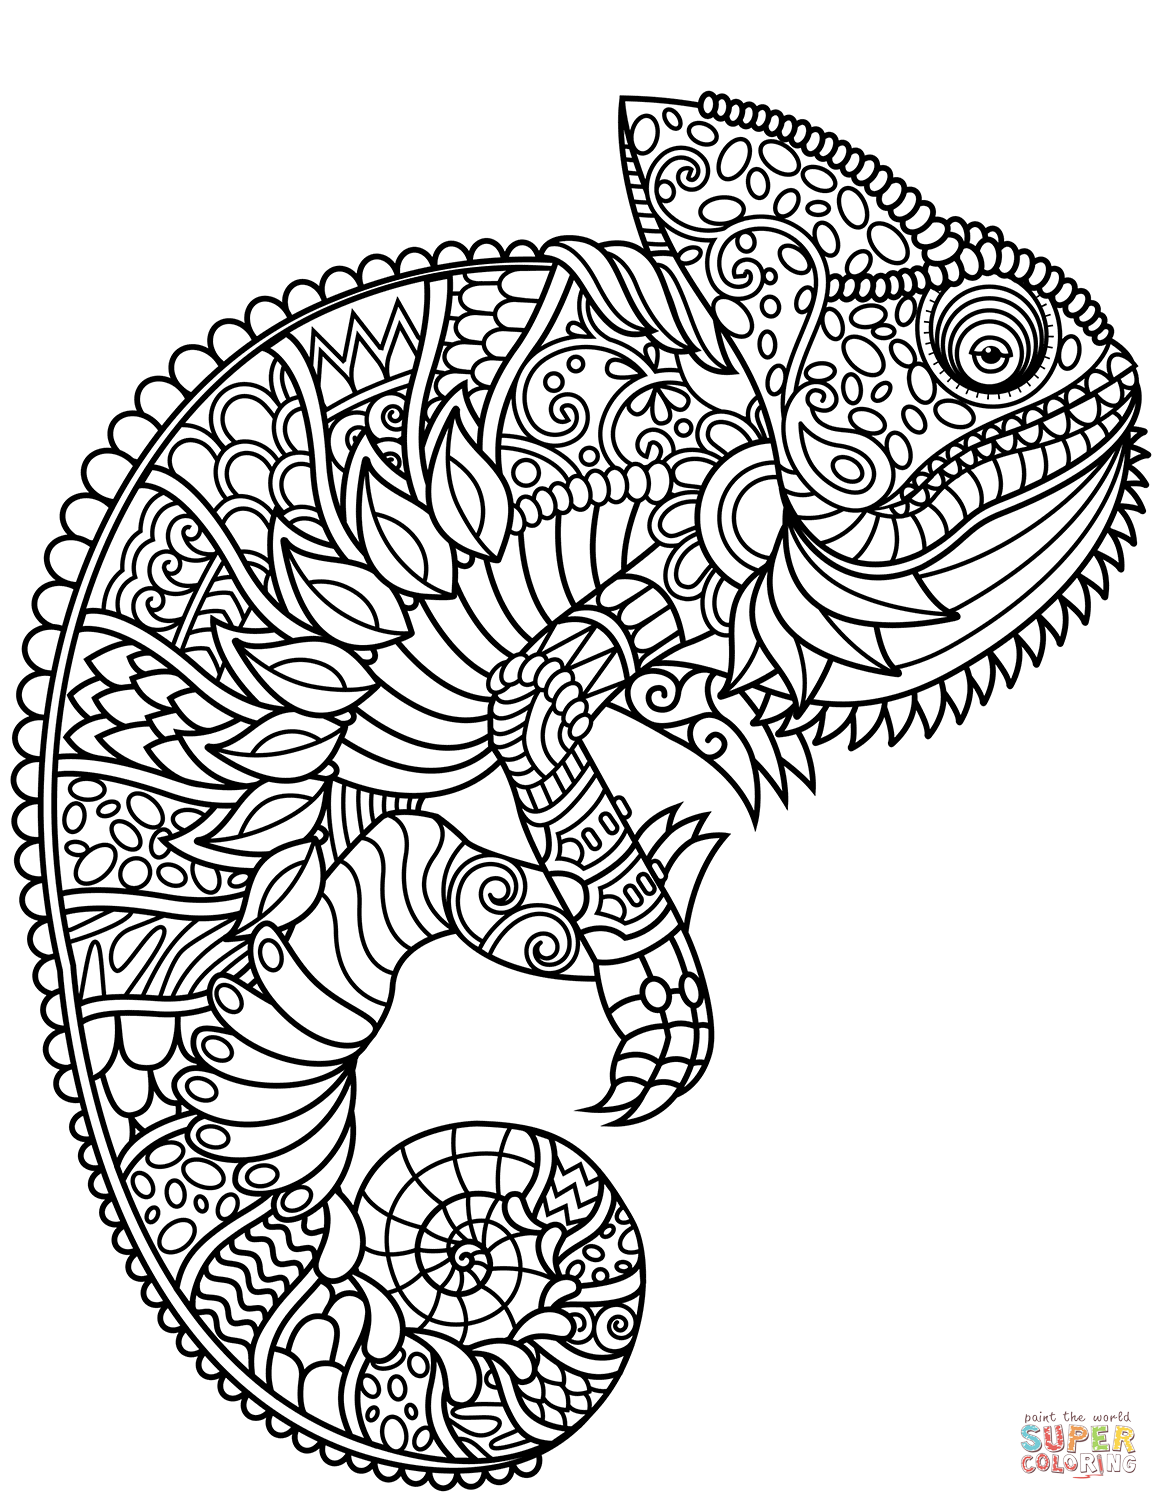 coloring pages zentangle zentangle coloring pages cat sketch coloring page zentangle pages coloring